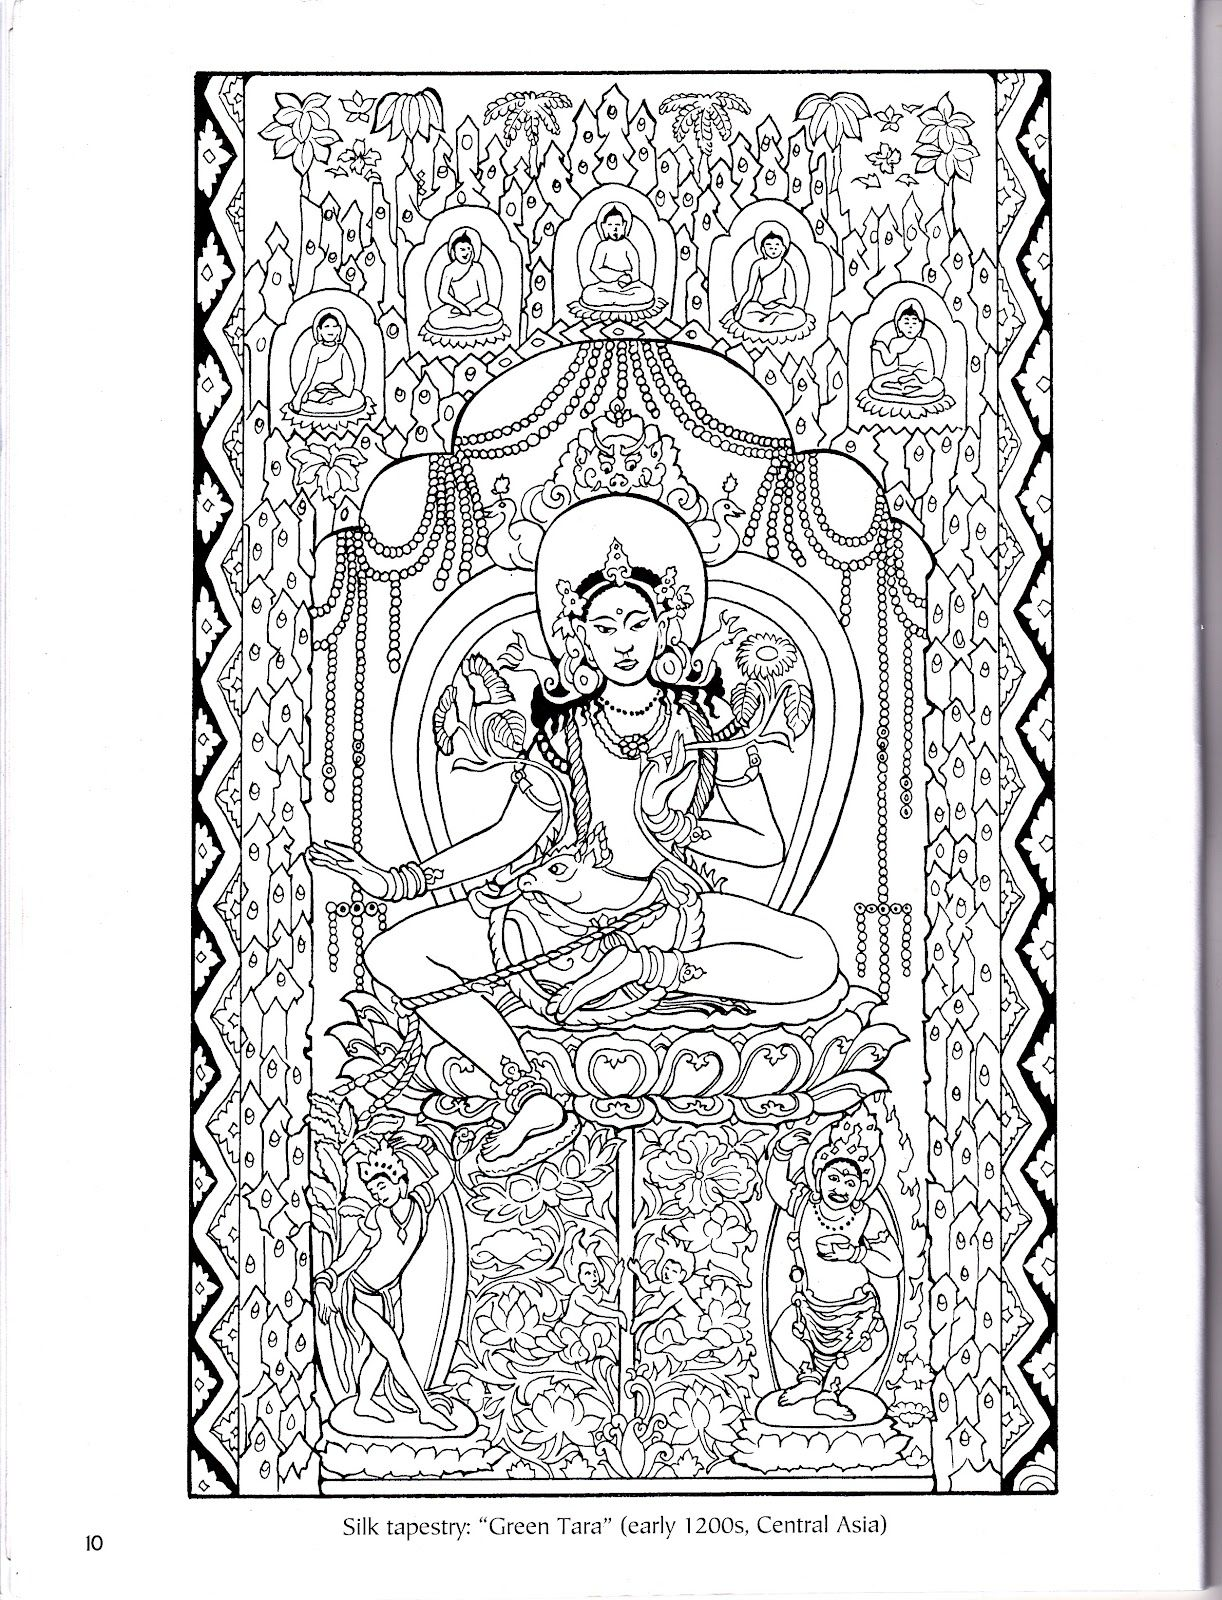 Coloring pages for adults difficult abstract - Difficult Coloring Pages For Adults Created By Dawn At 10 38 Pm No Comments